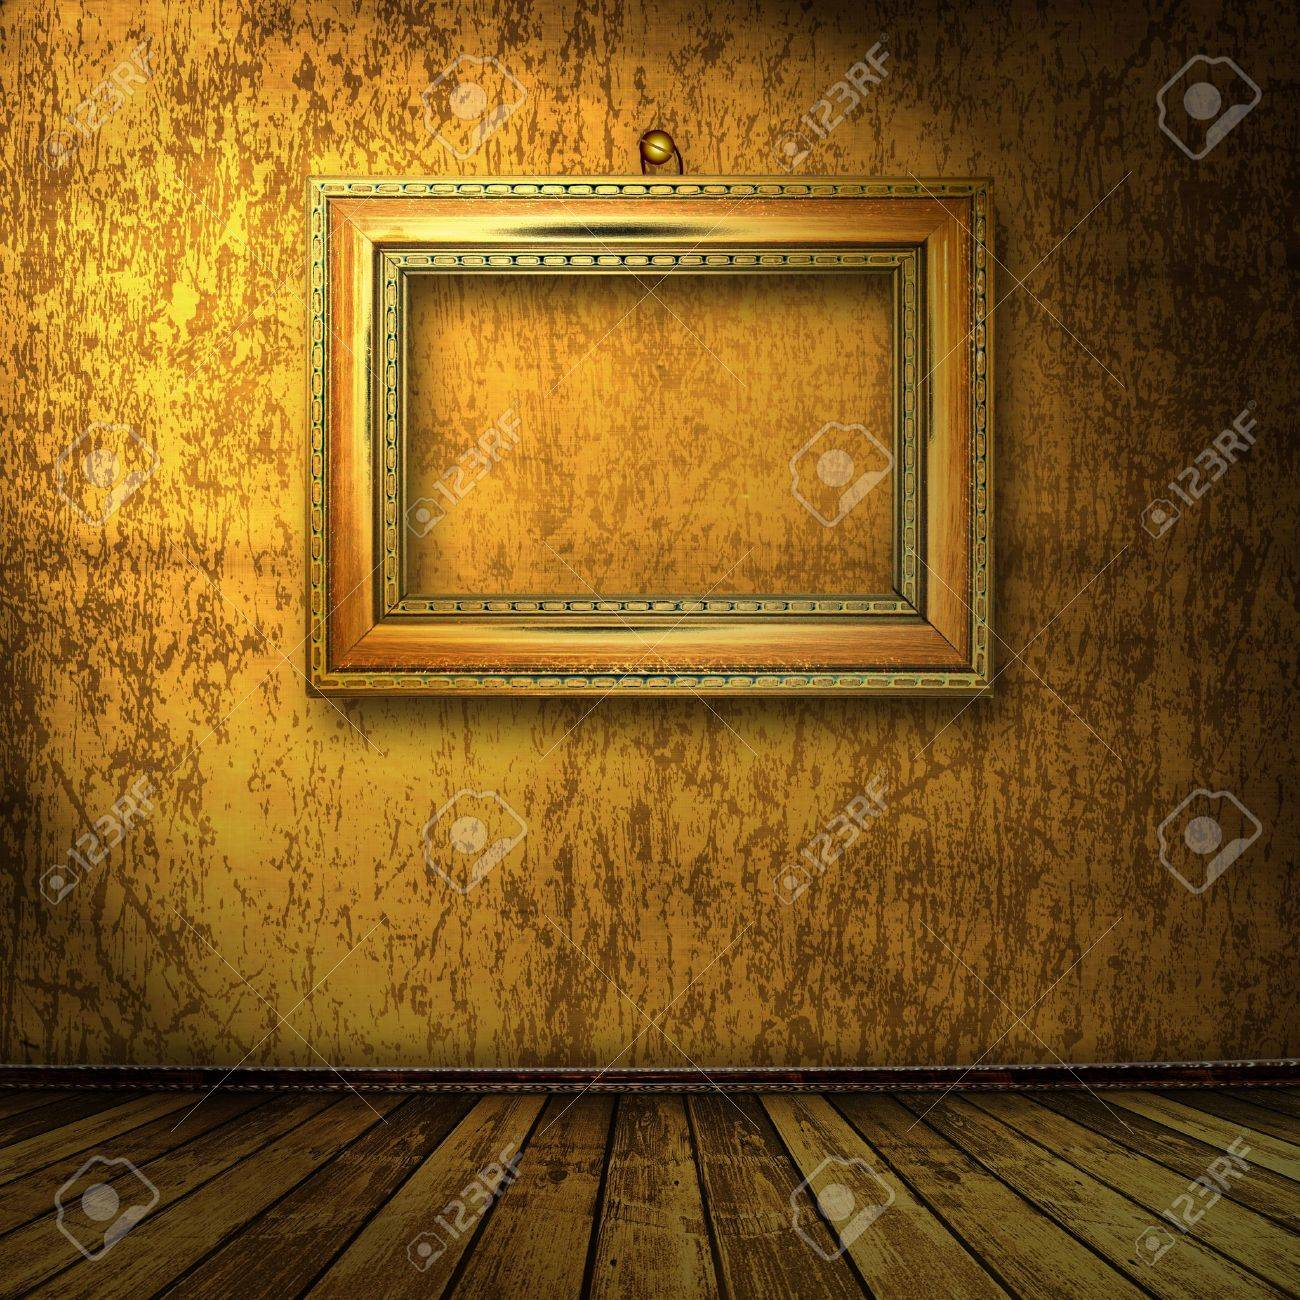 grunge  interior with frame in style baroque Stock Photo - 7249627